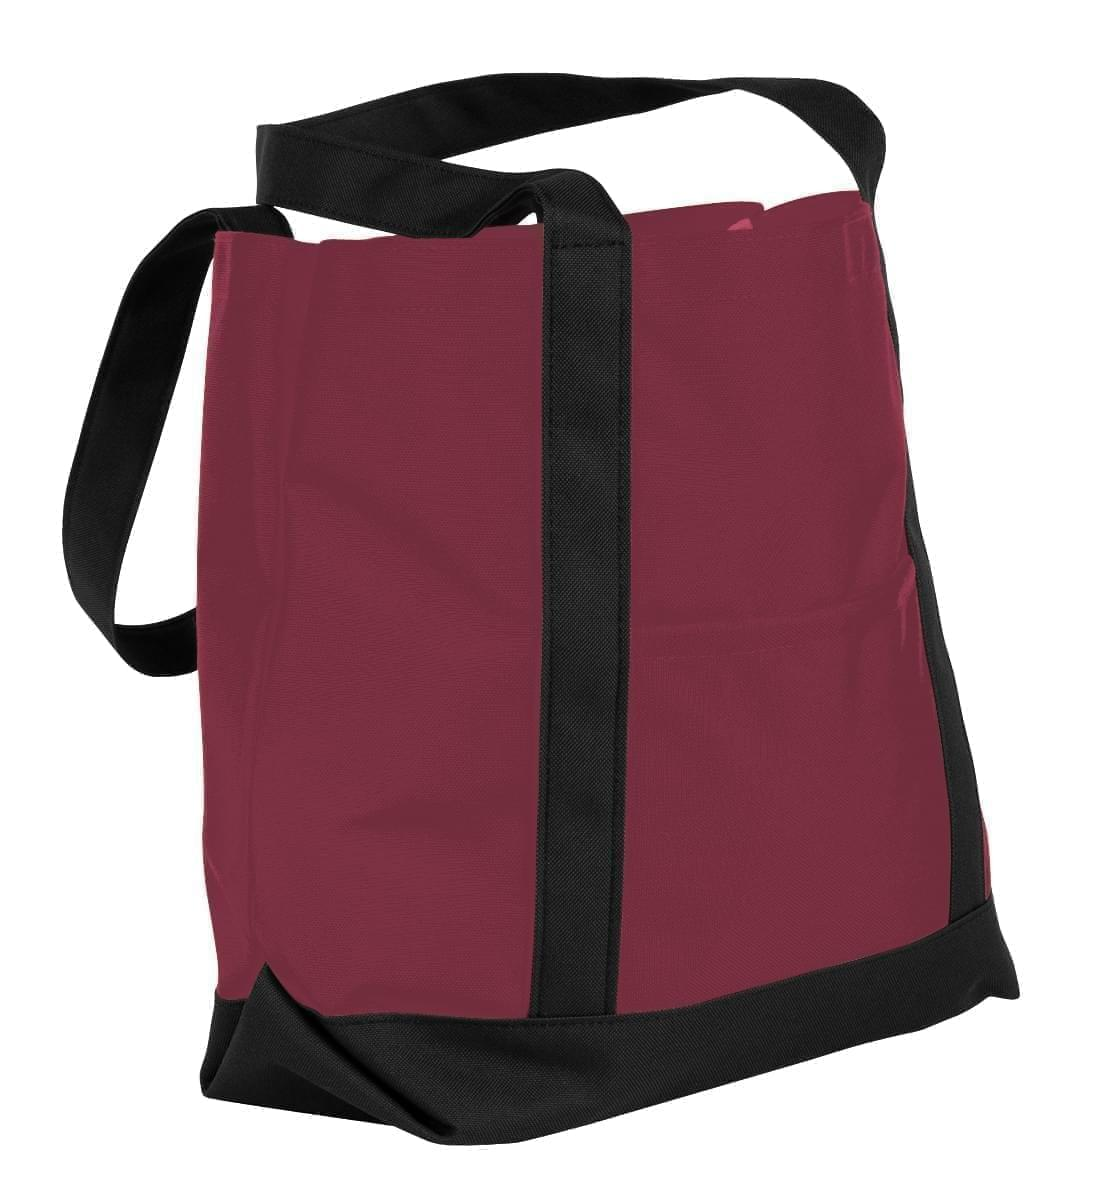 USA Made Nylon Poly Boat Tote Bags, Burgundy-Black, XAACL1UAQC